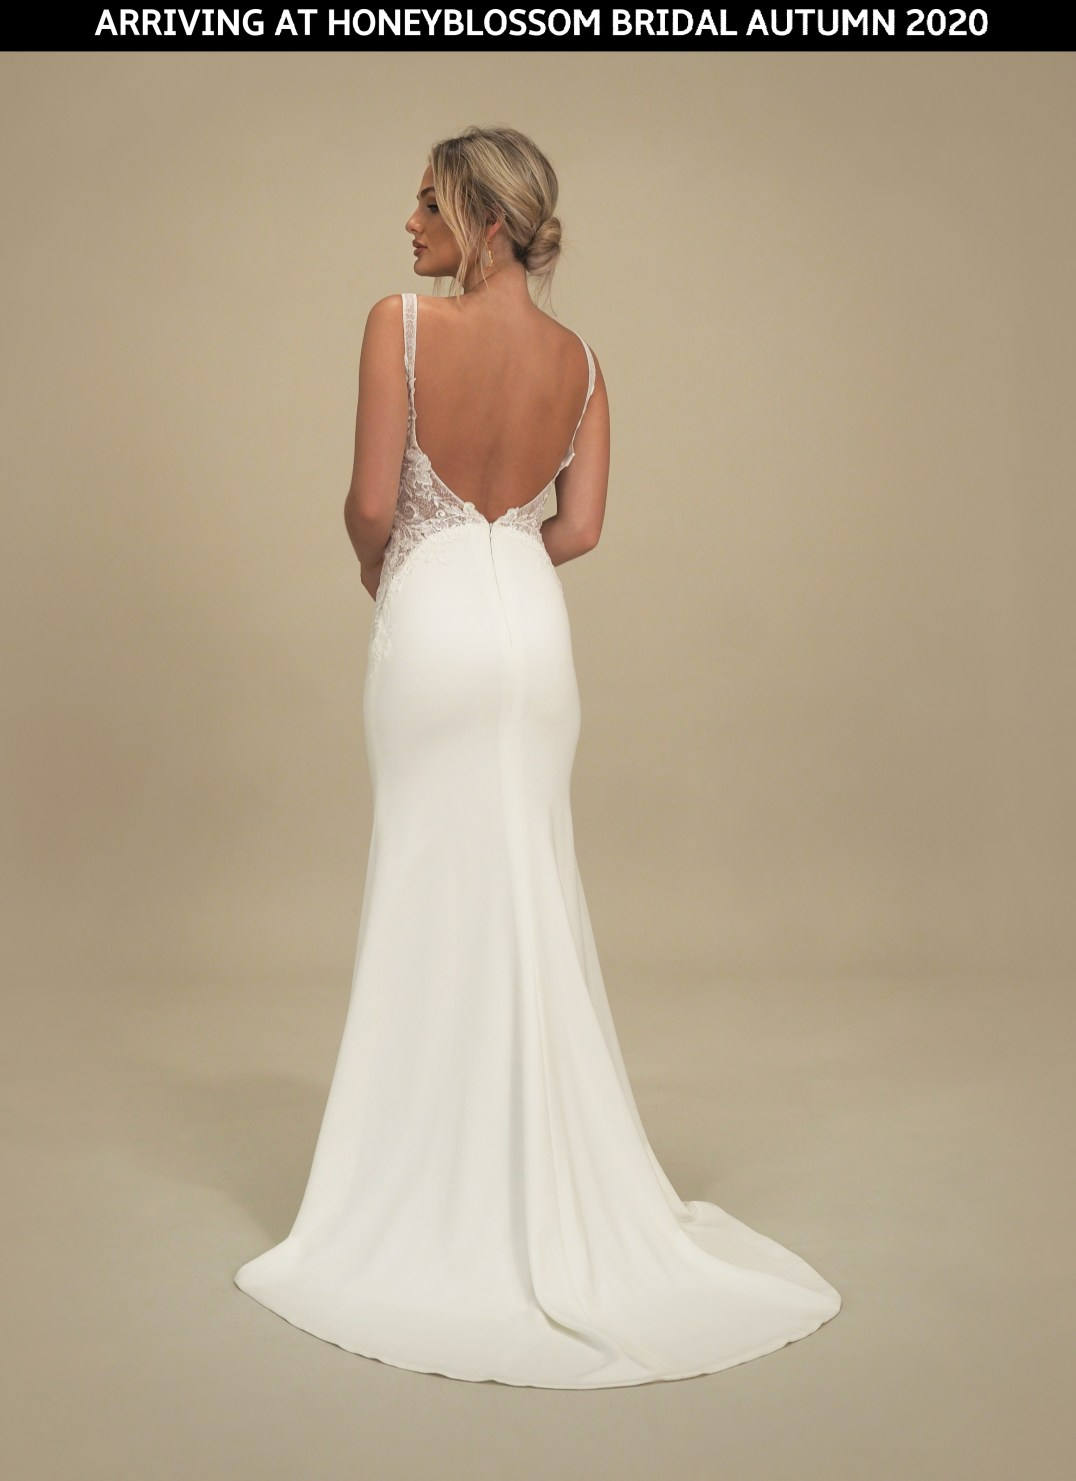 GAIA Portofino bridal gown arriving soon to Honeyblossom Bridal boutique